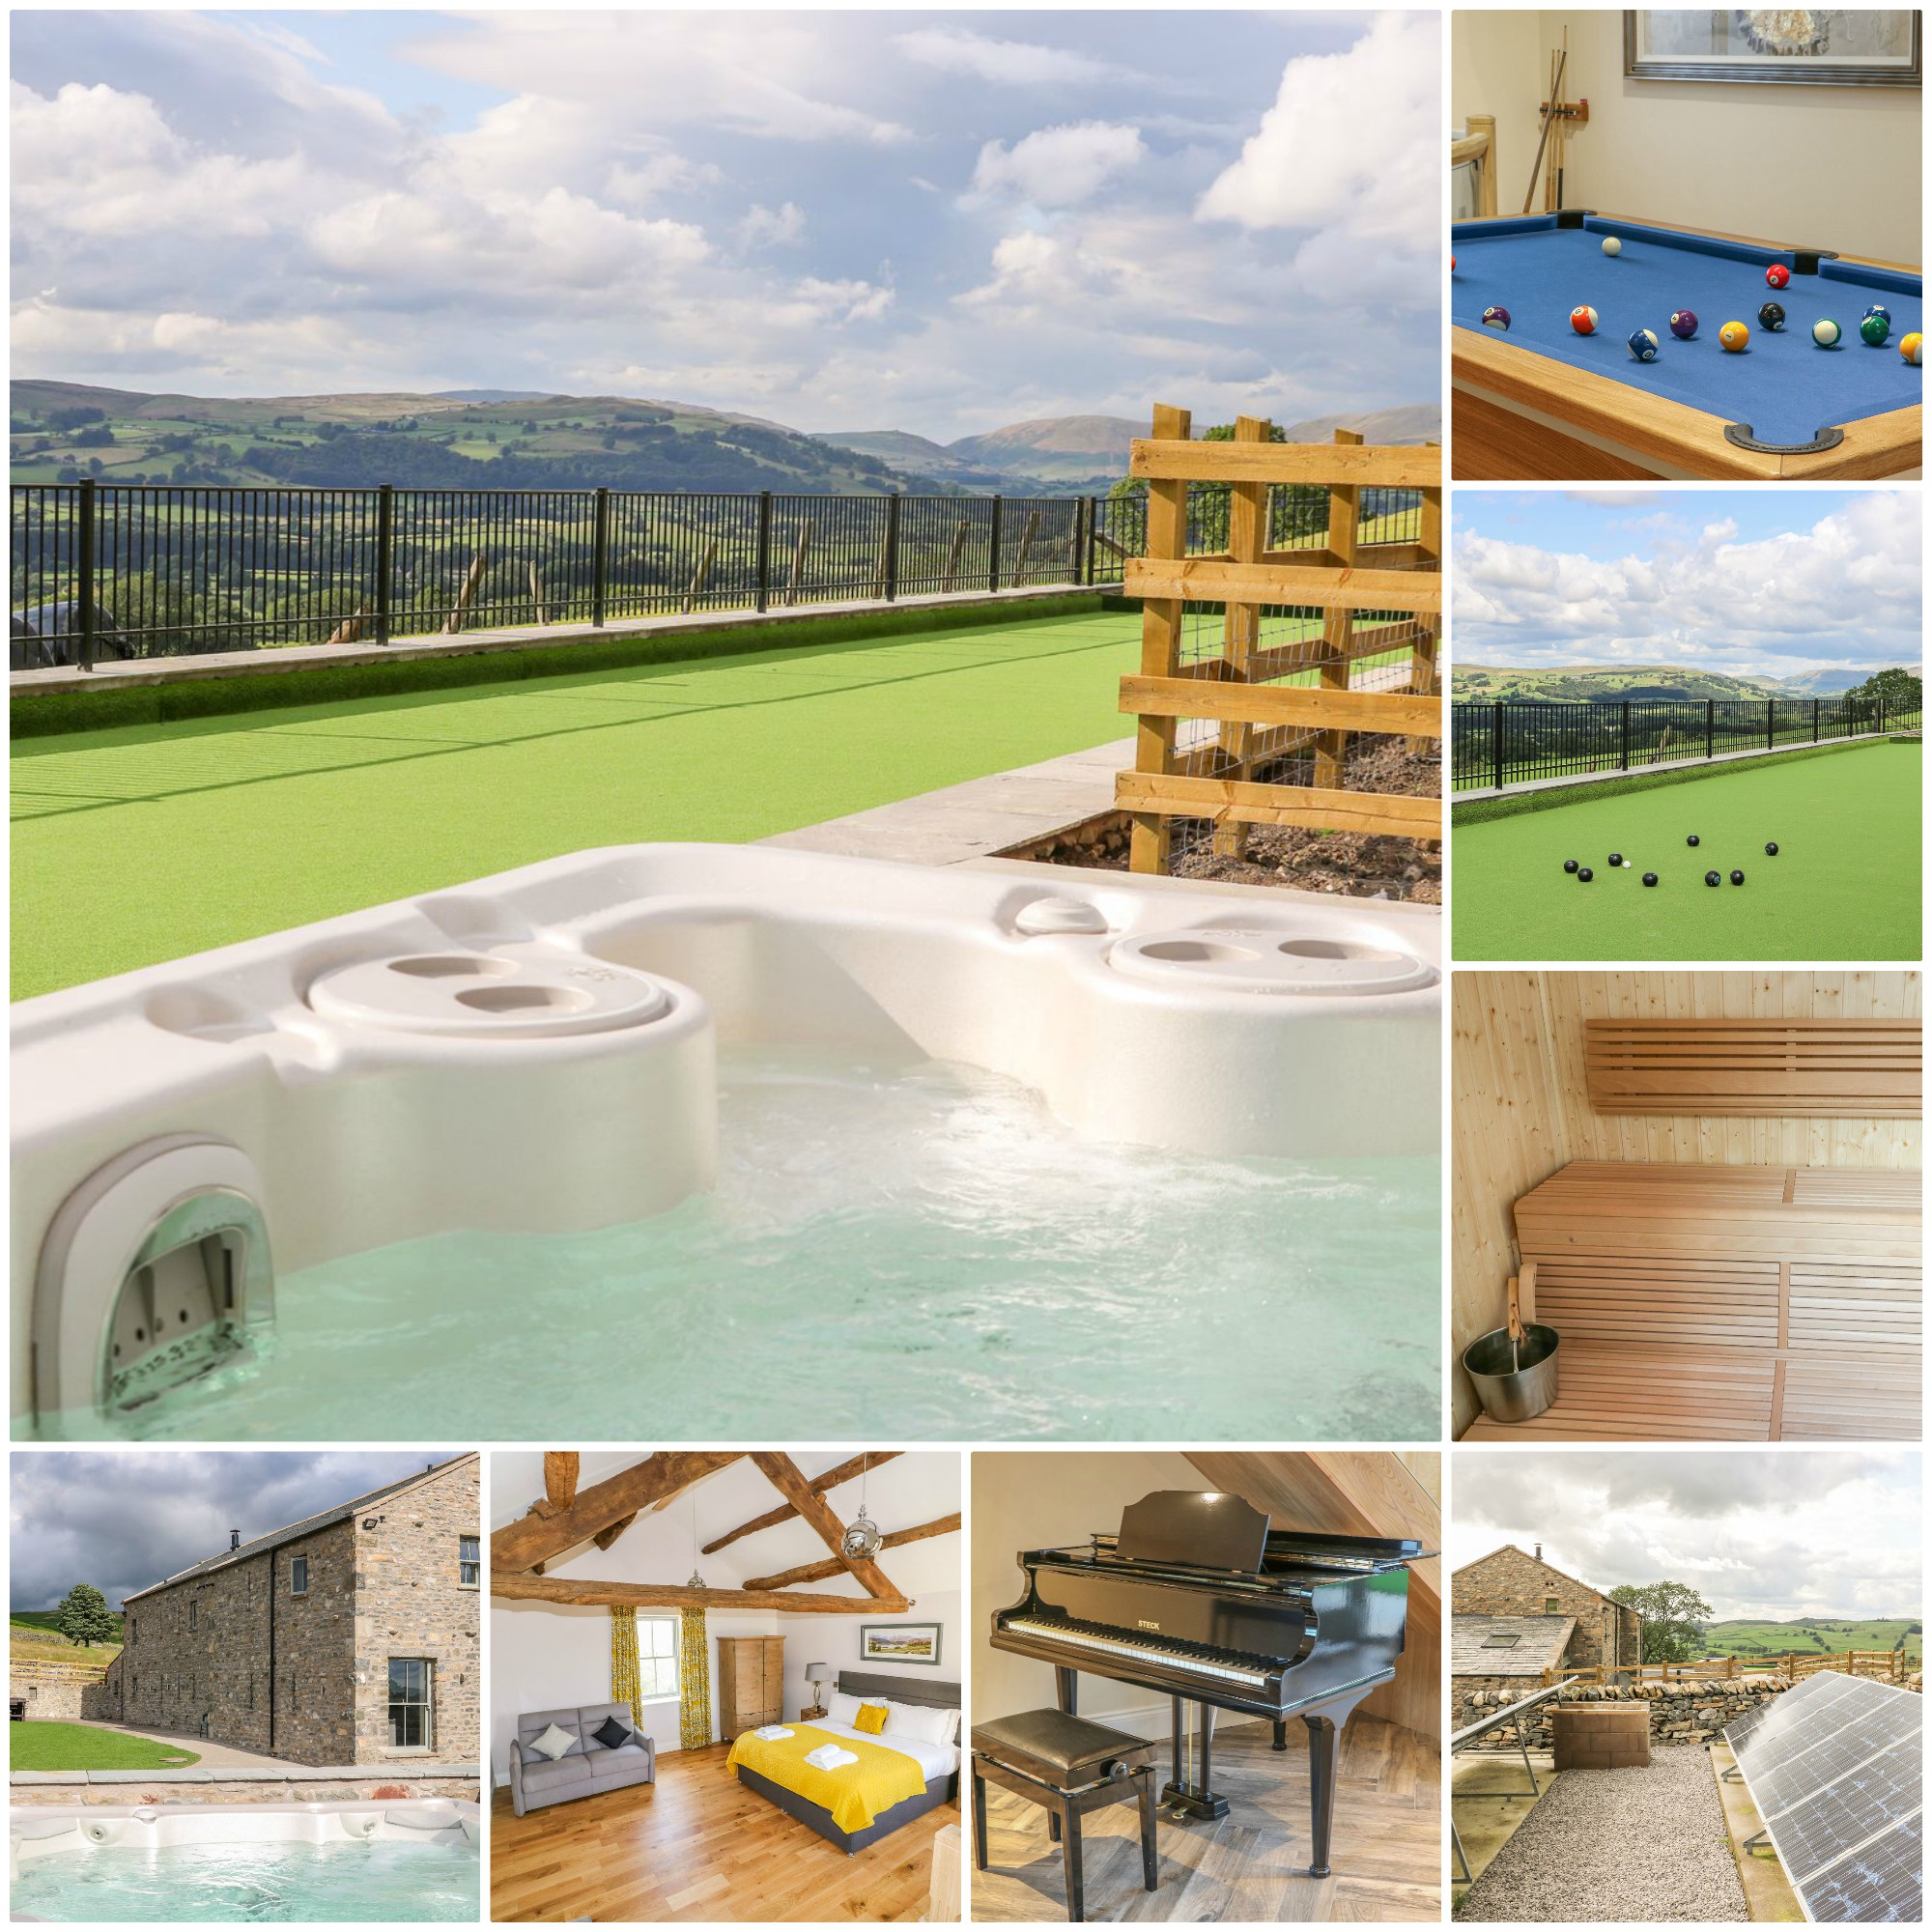 beautiful countryside, a hot tub, sauna and a bowling green!